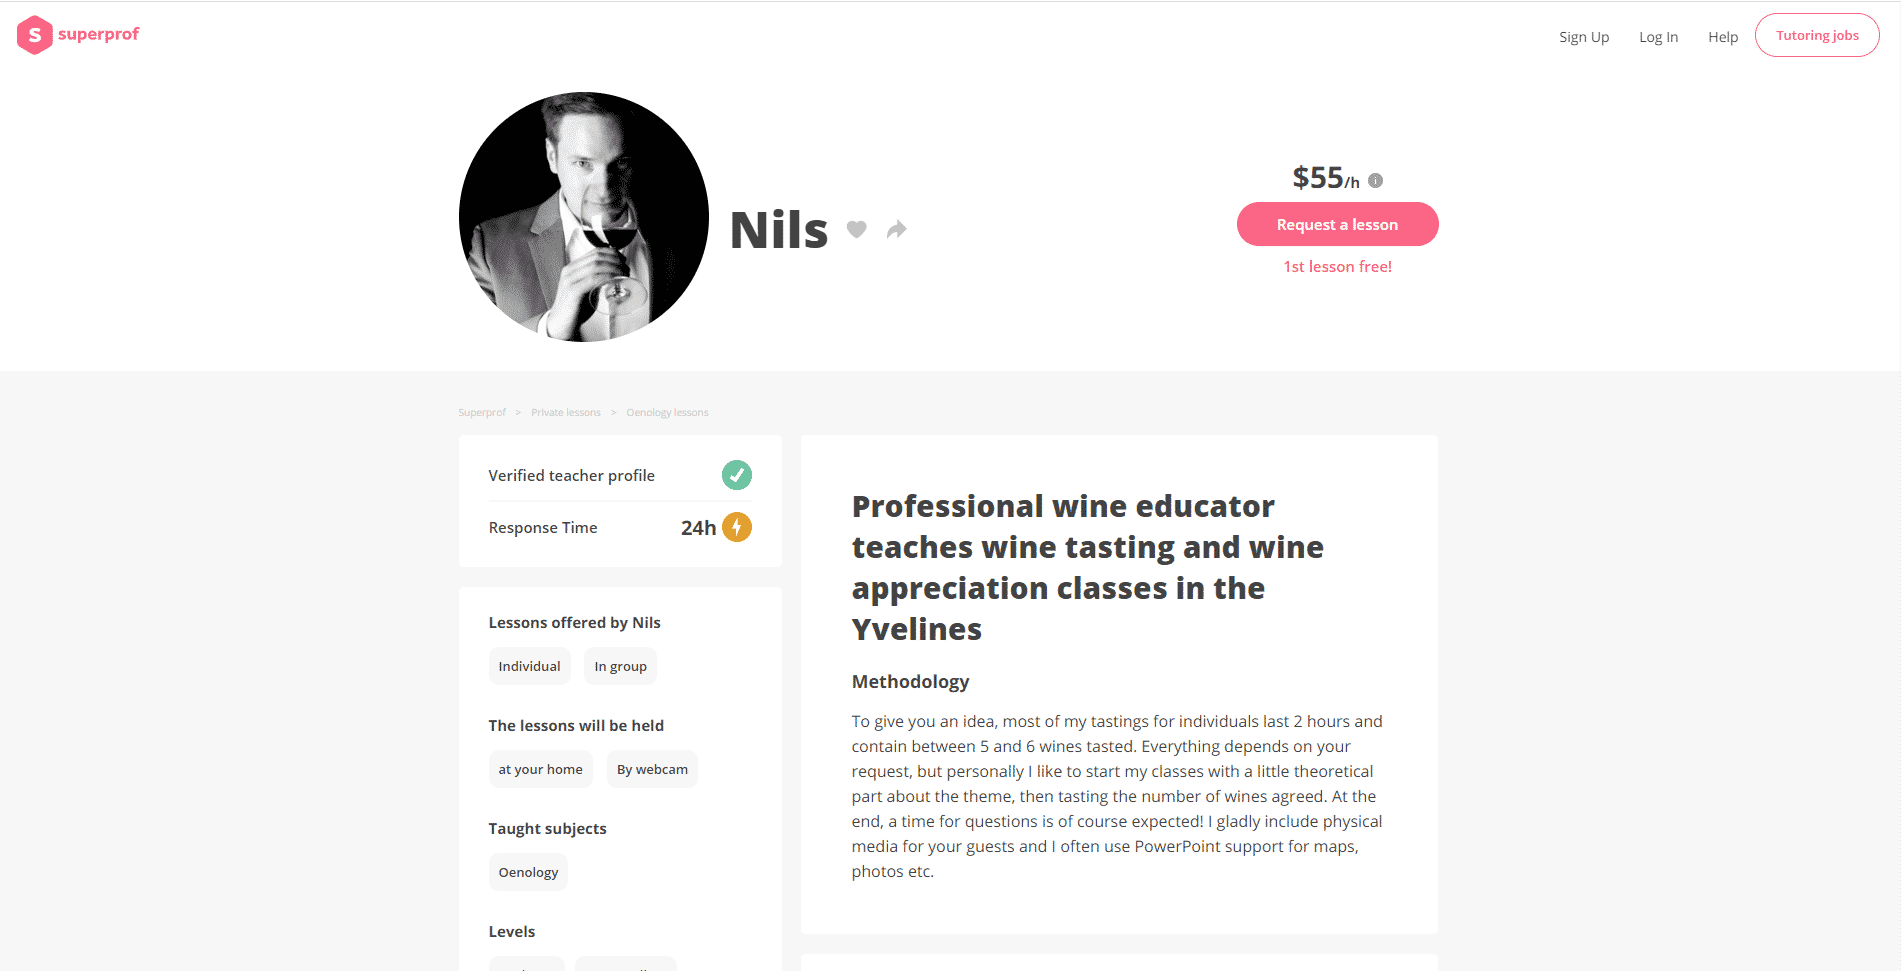 Superprof Learn Wine Appreciation Lessons Online